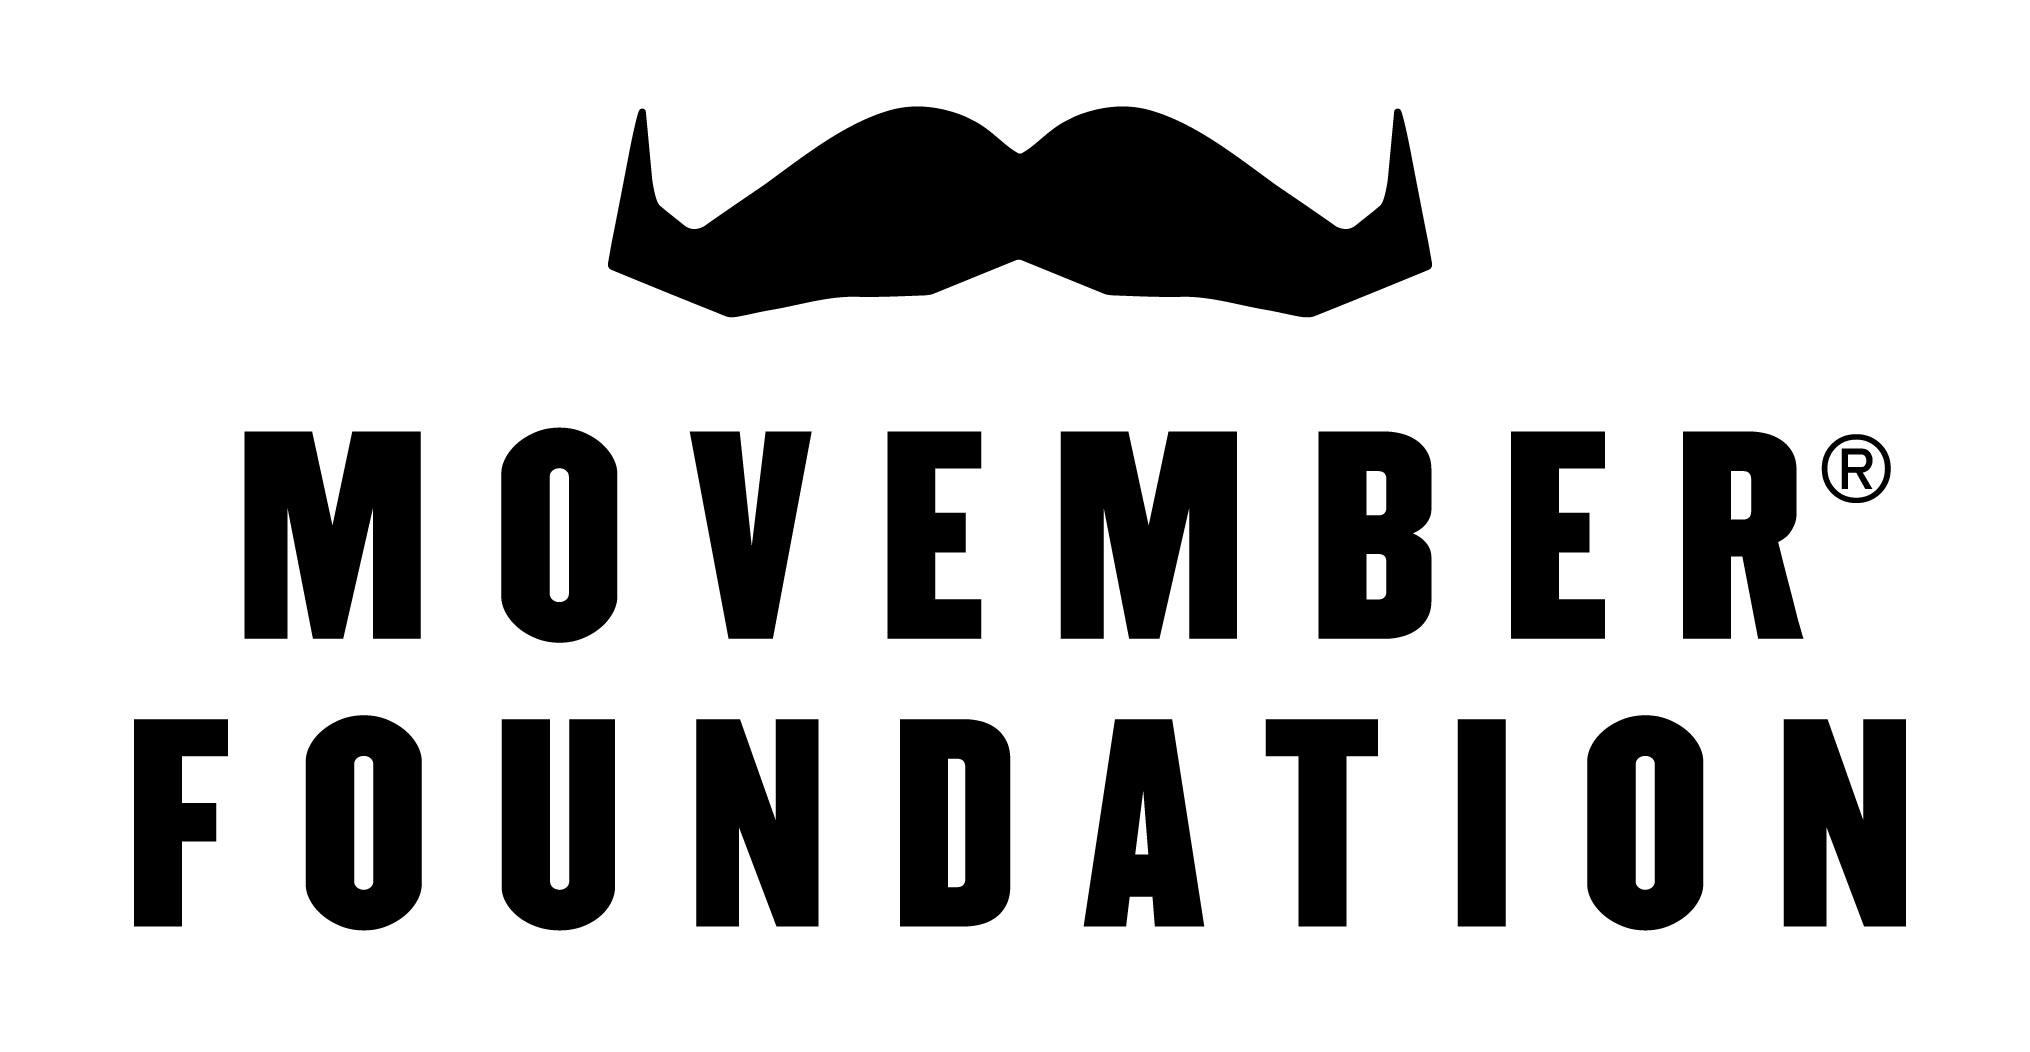 November Foundation